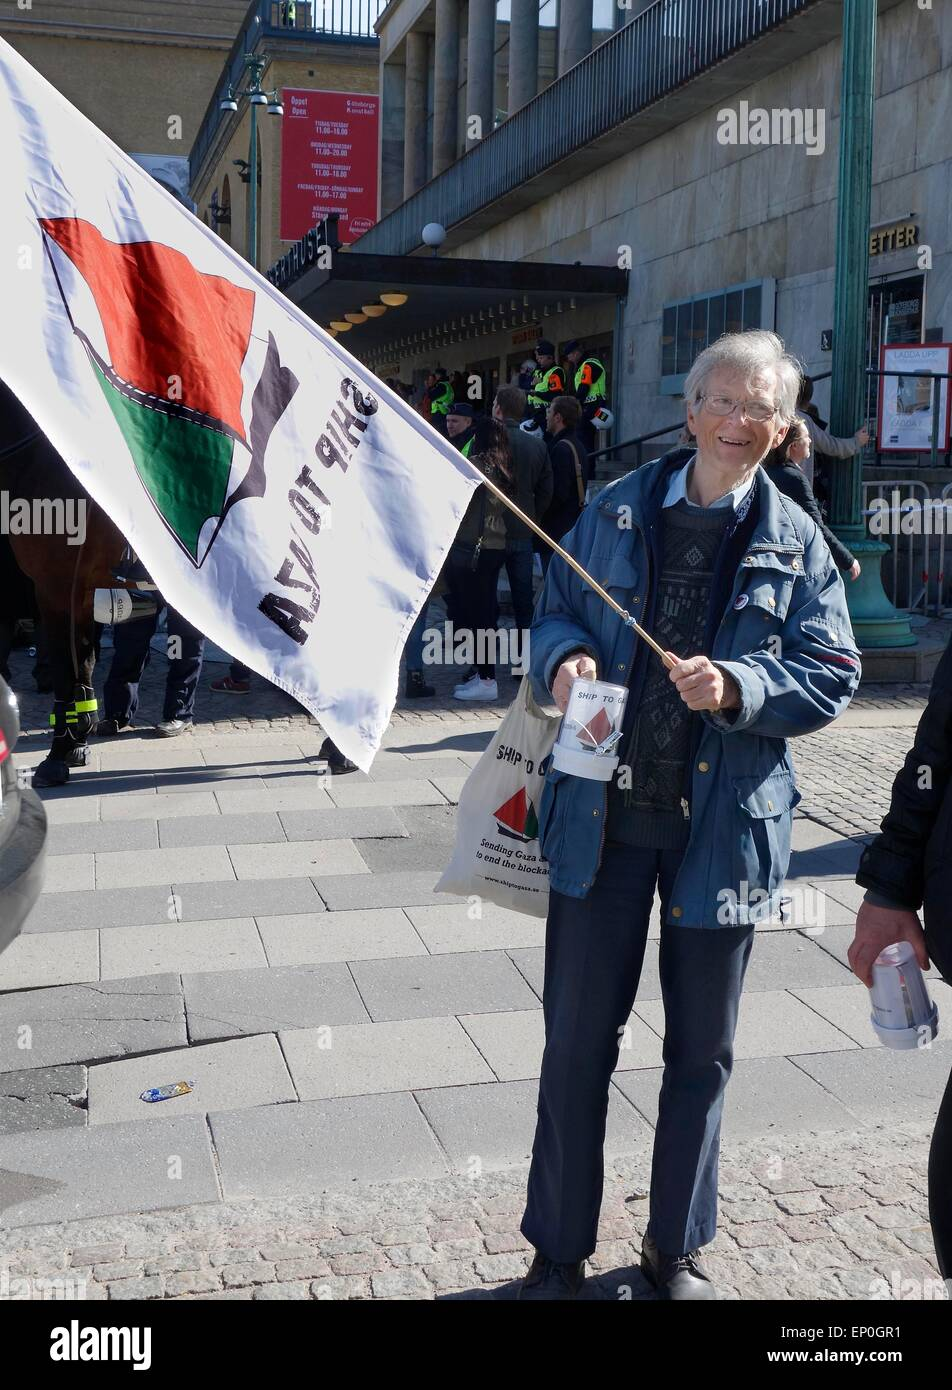 An anti-Zionist man collects donations for 'Ship to Gaza', a Swedish organisation who tries to break 'the - Stock Image